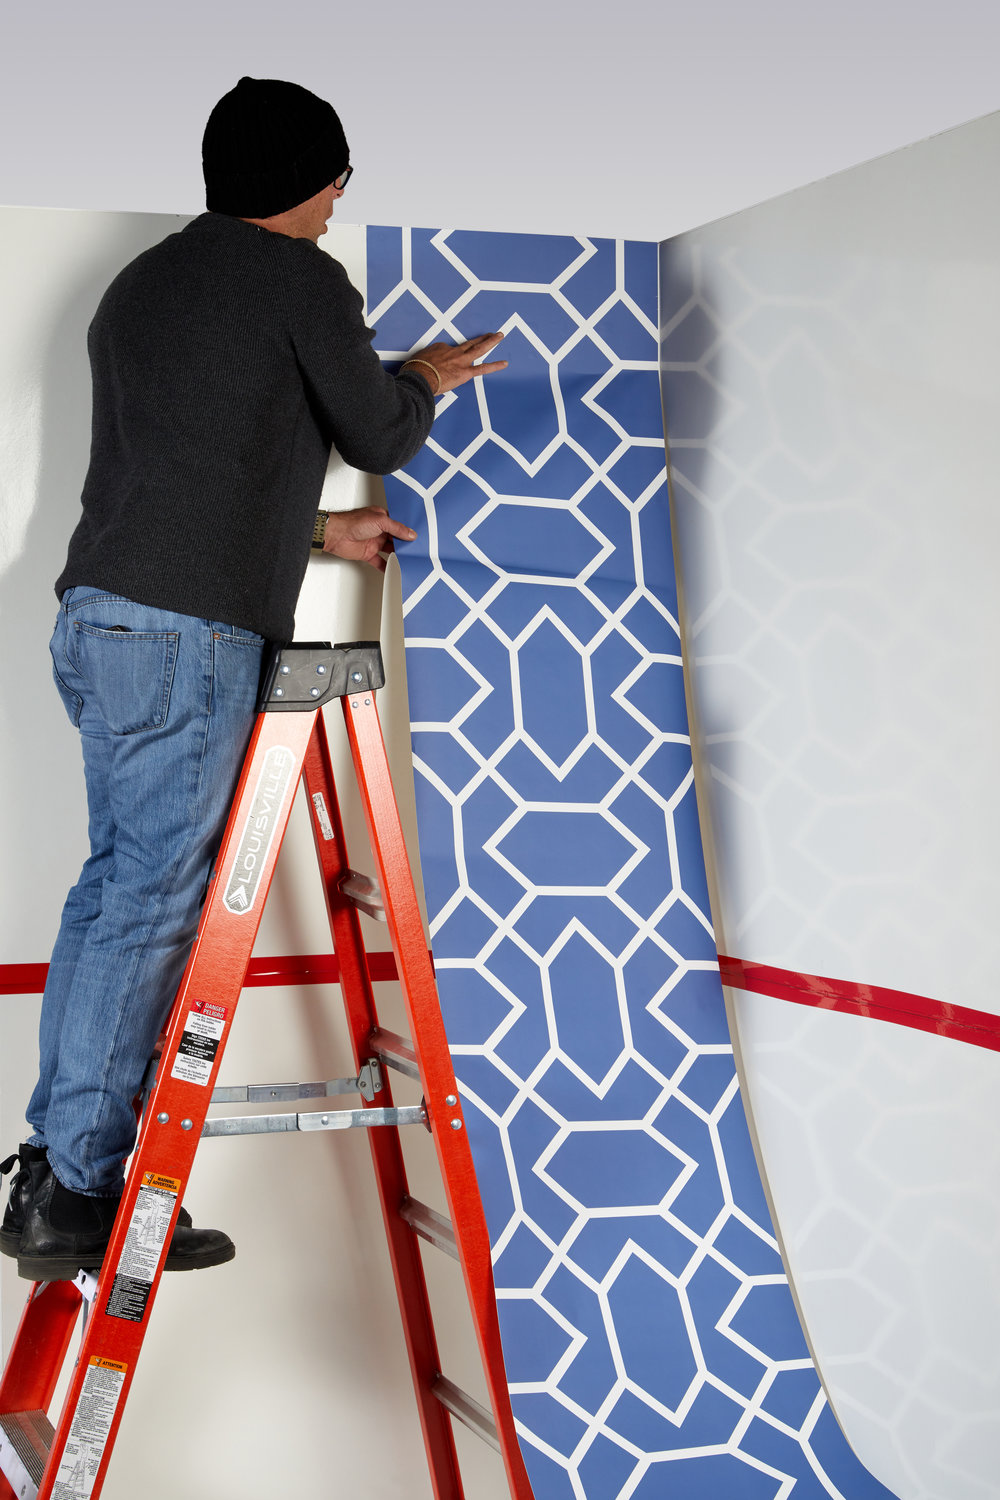 Installing a first section of adhesive backed wallpaper.